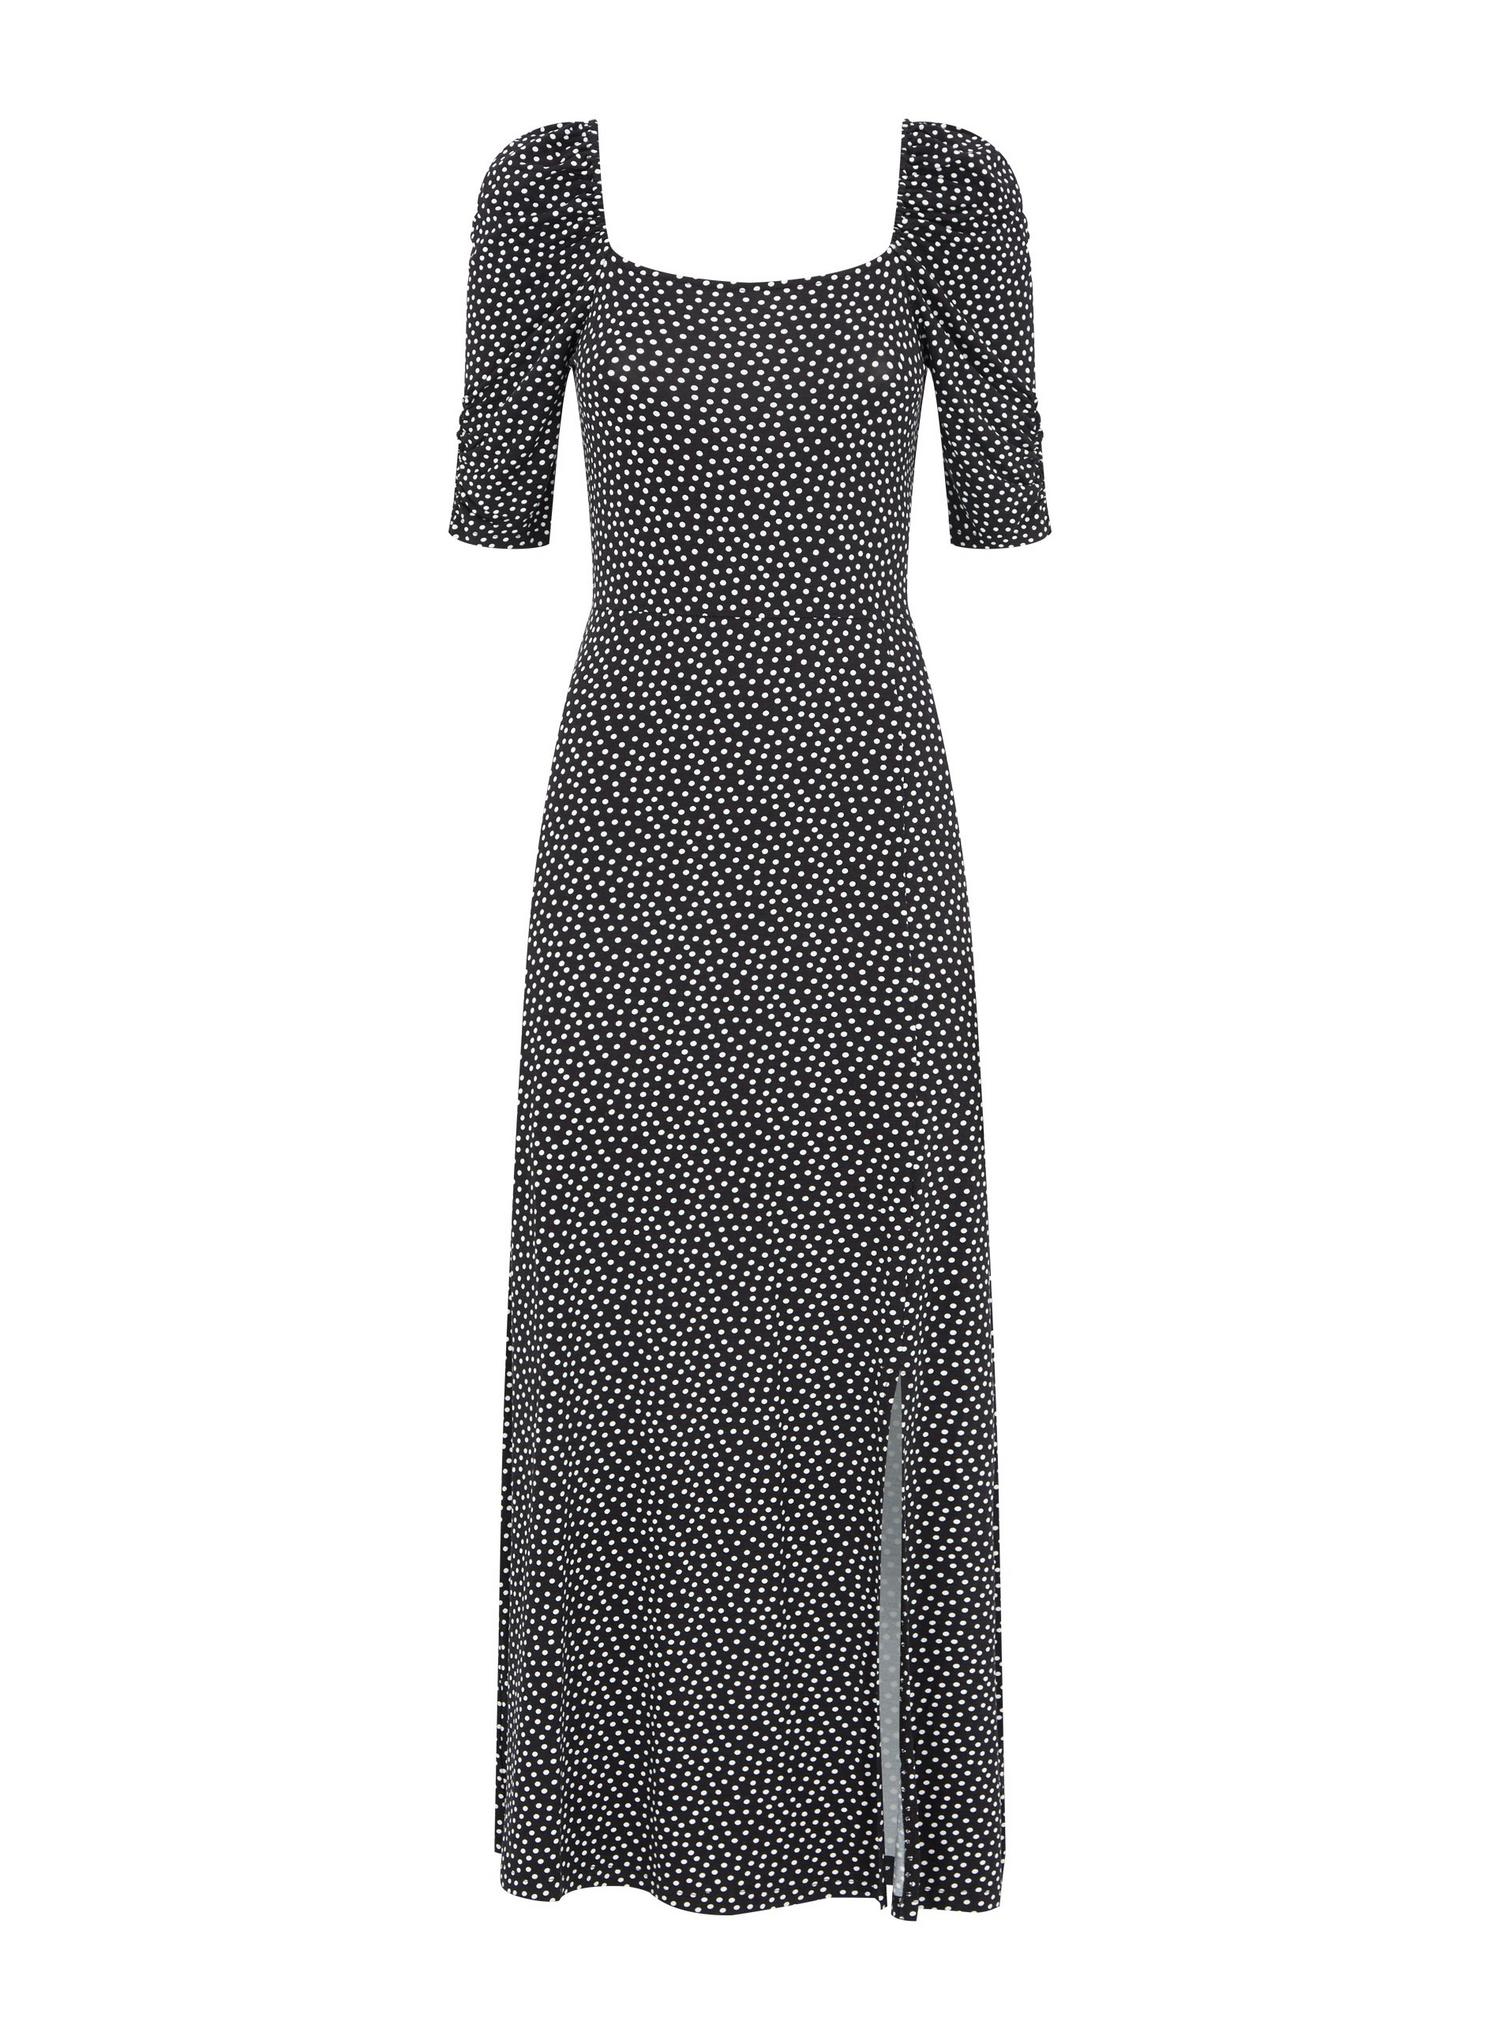 105 Black Spot Print Midi Dress image number 2